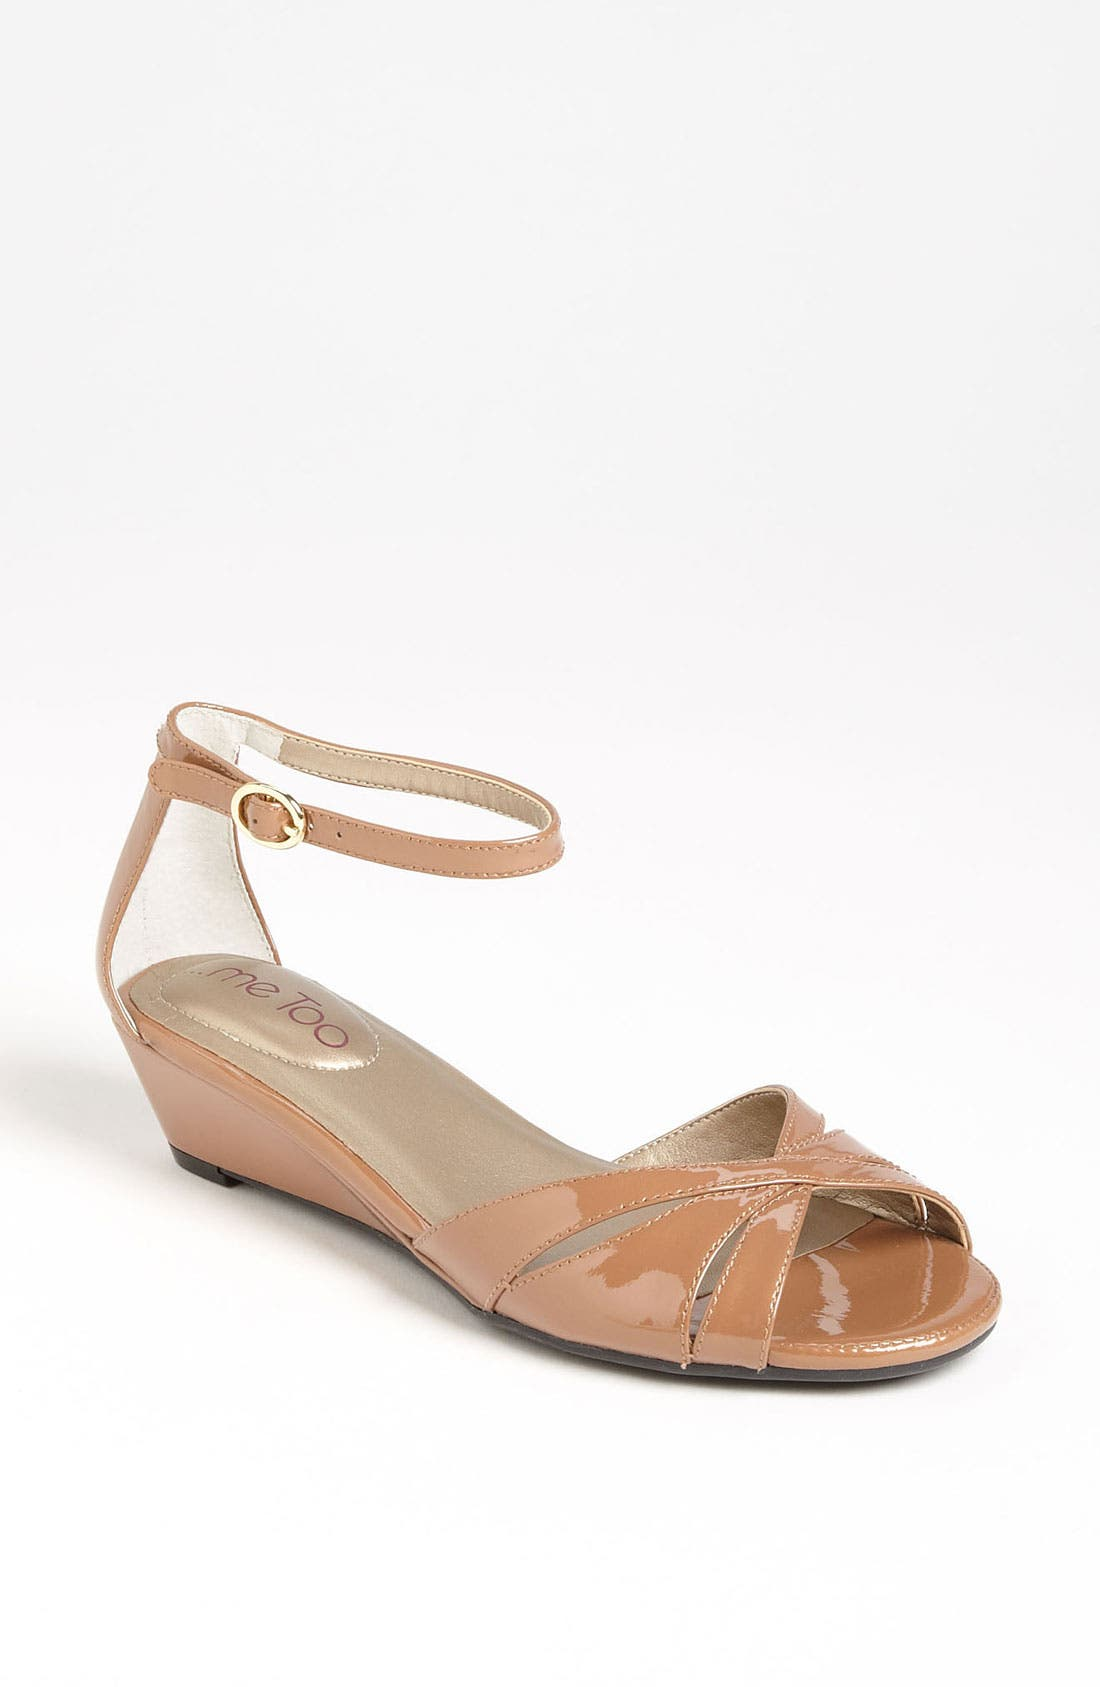 Alternate Image 1 Selected - Me Too 'Sarina' Wedge Sandal